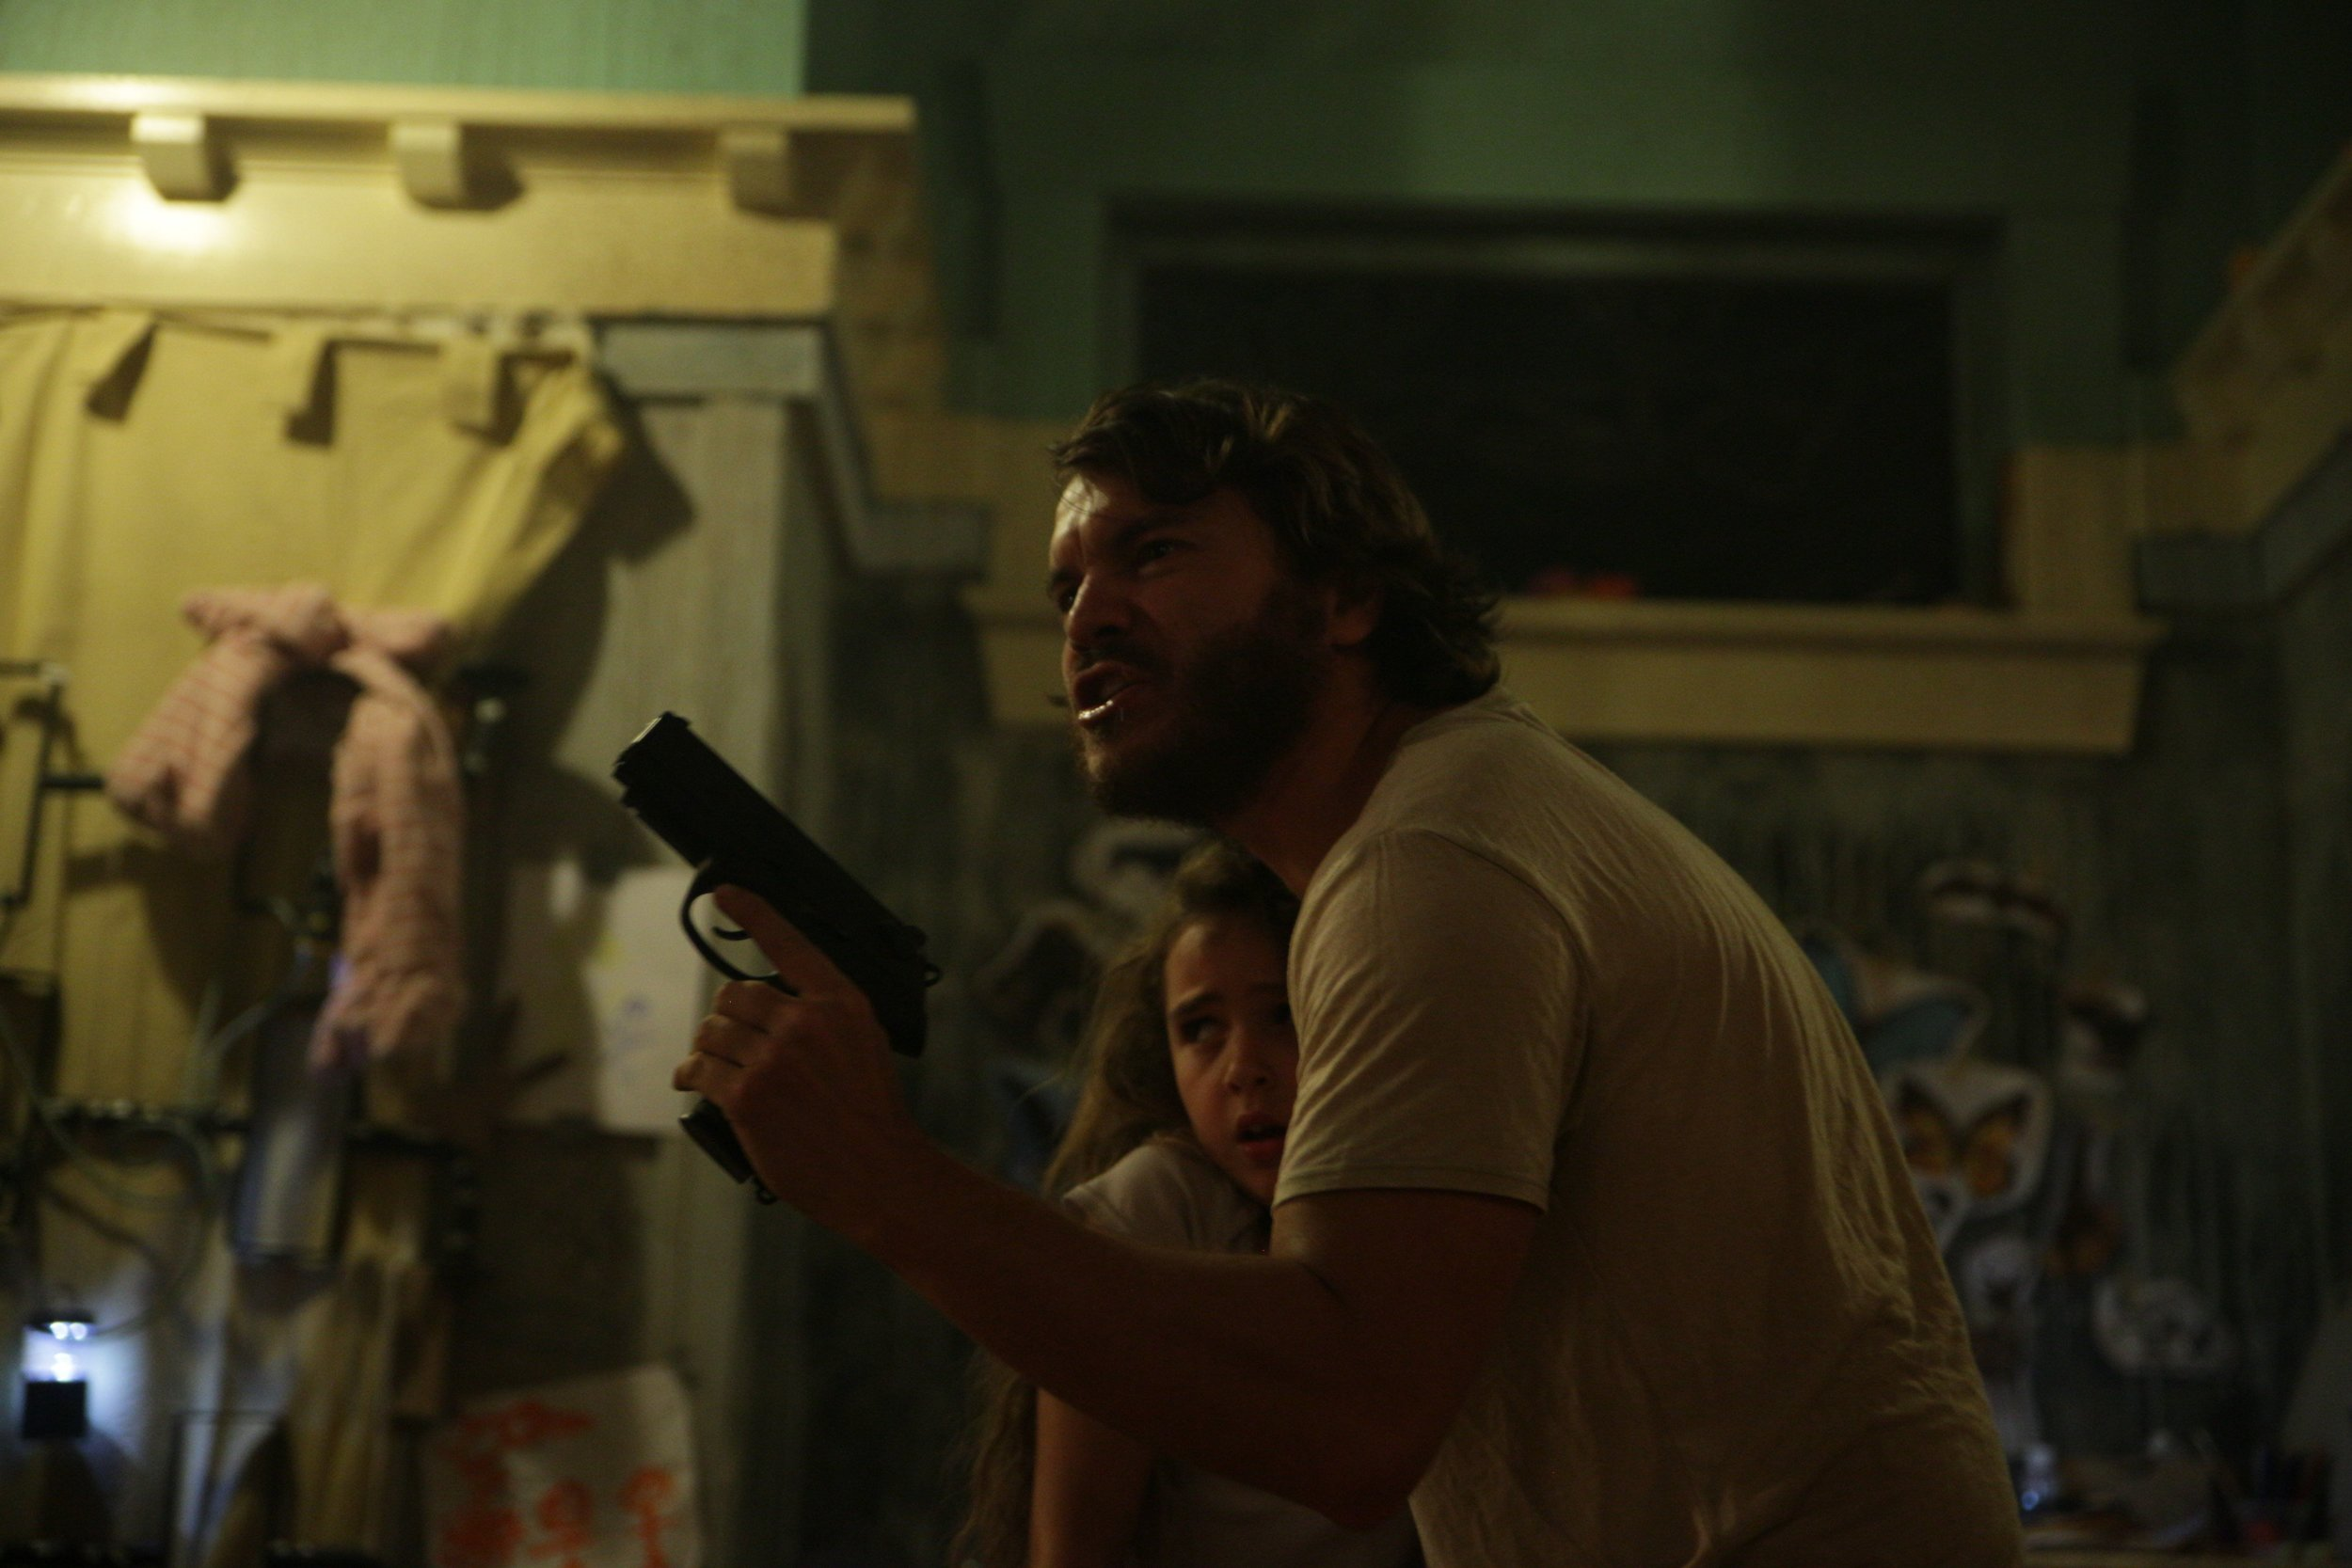 Freaks - Science-fiction mixed in with family drama and action thriller.